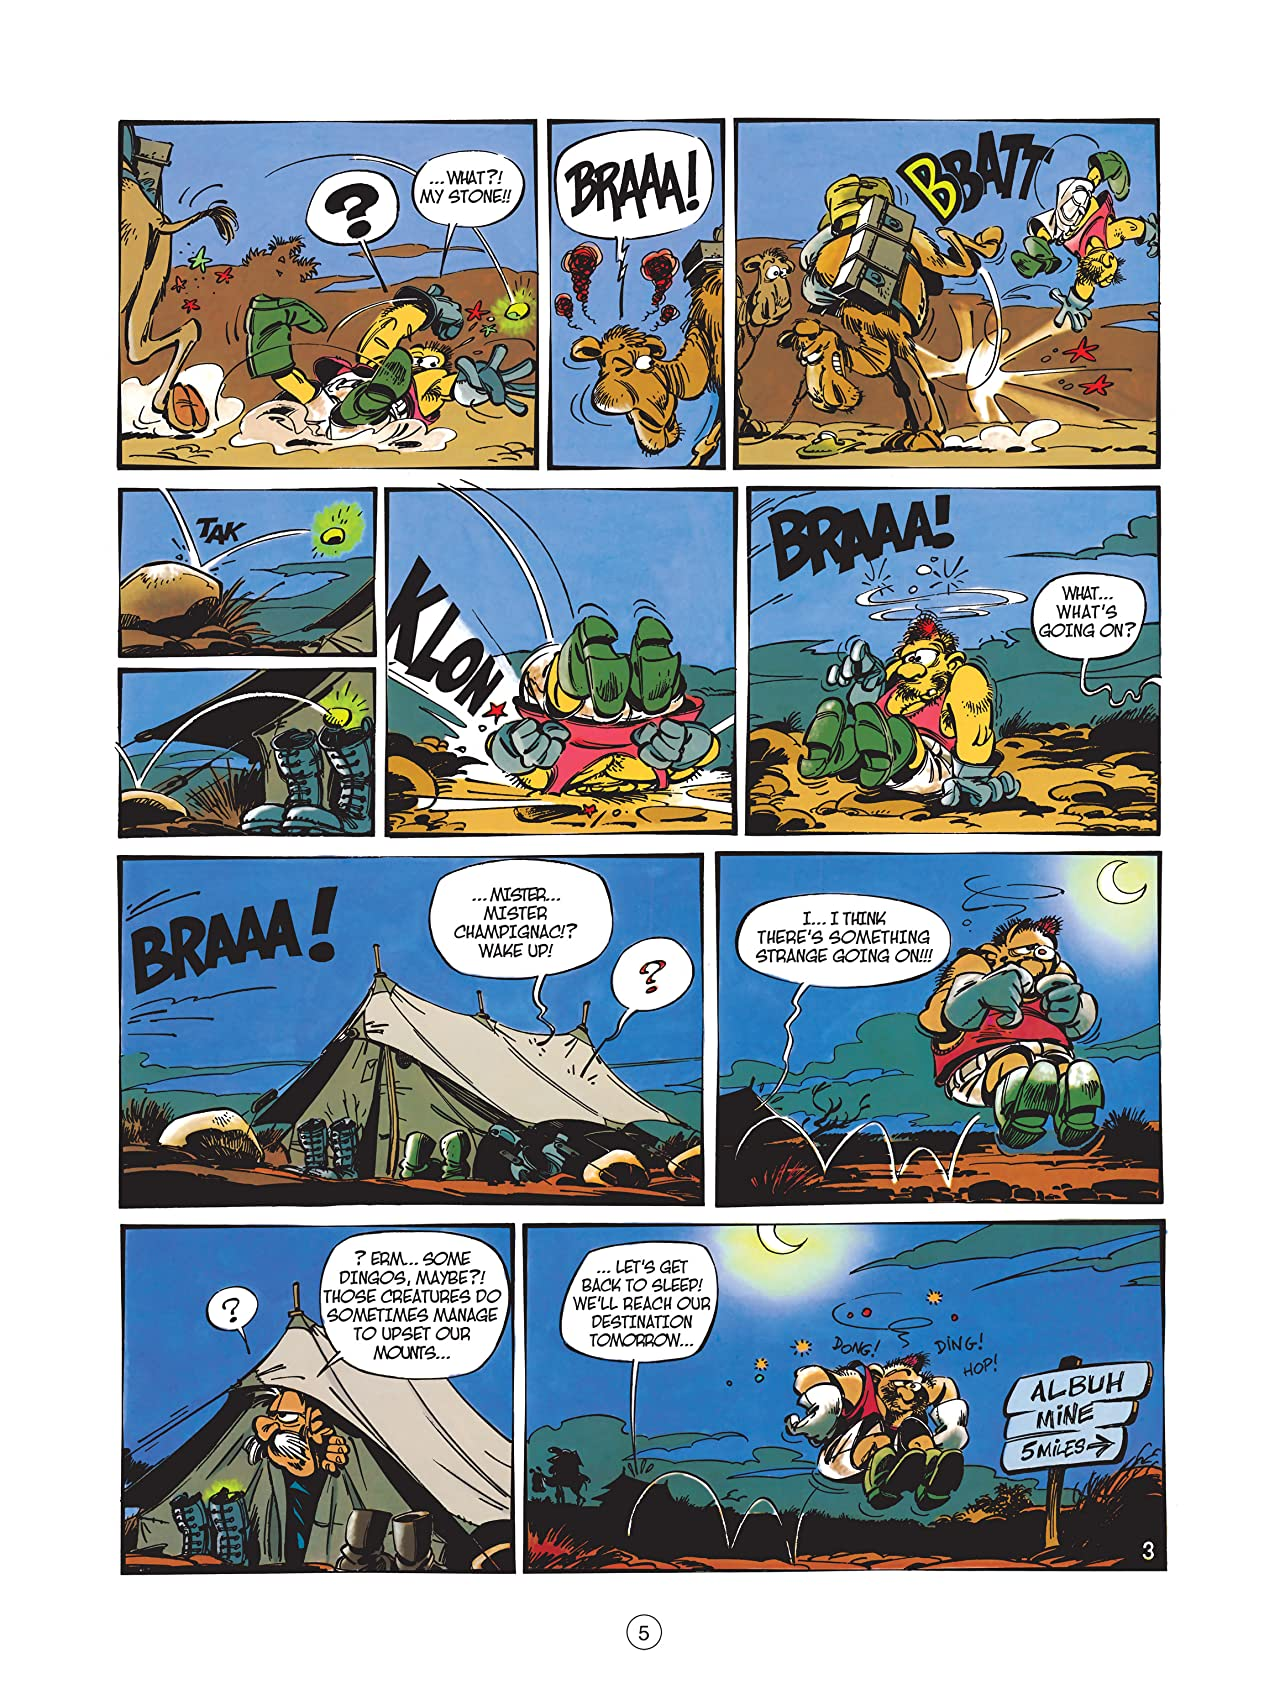 Spirou & Fantasio Vol. 1: Adventure Down Under